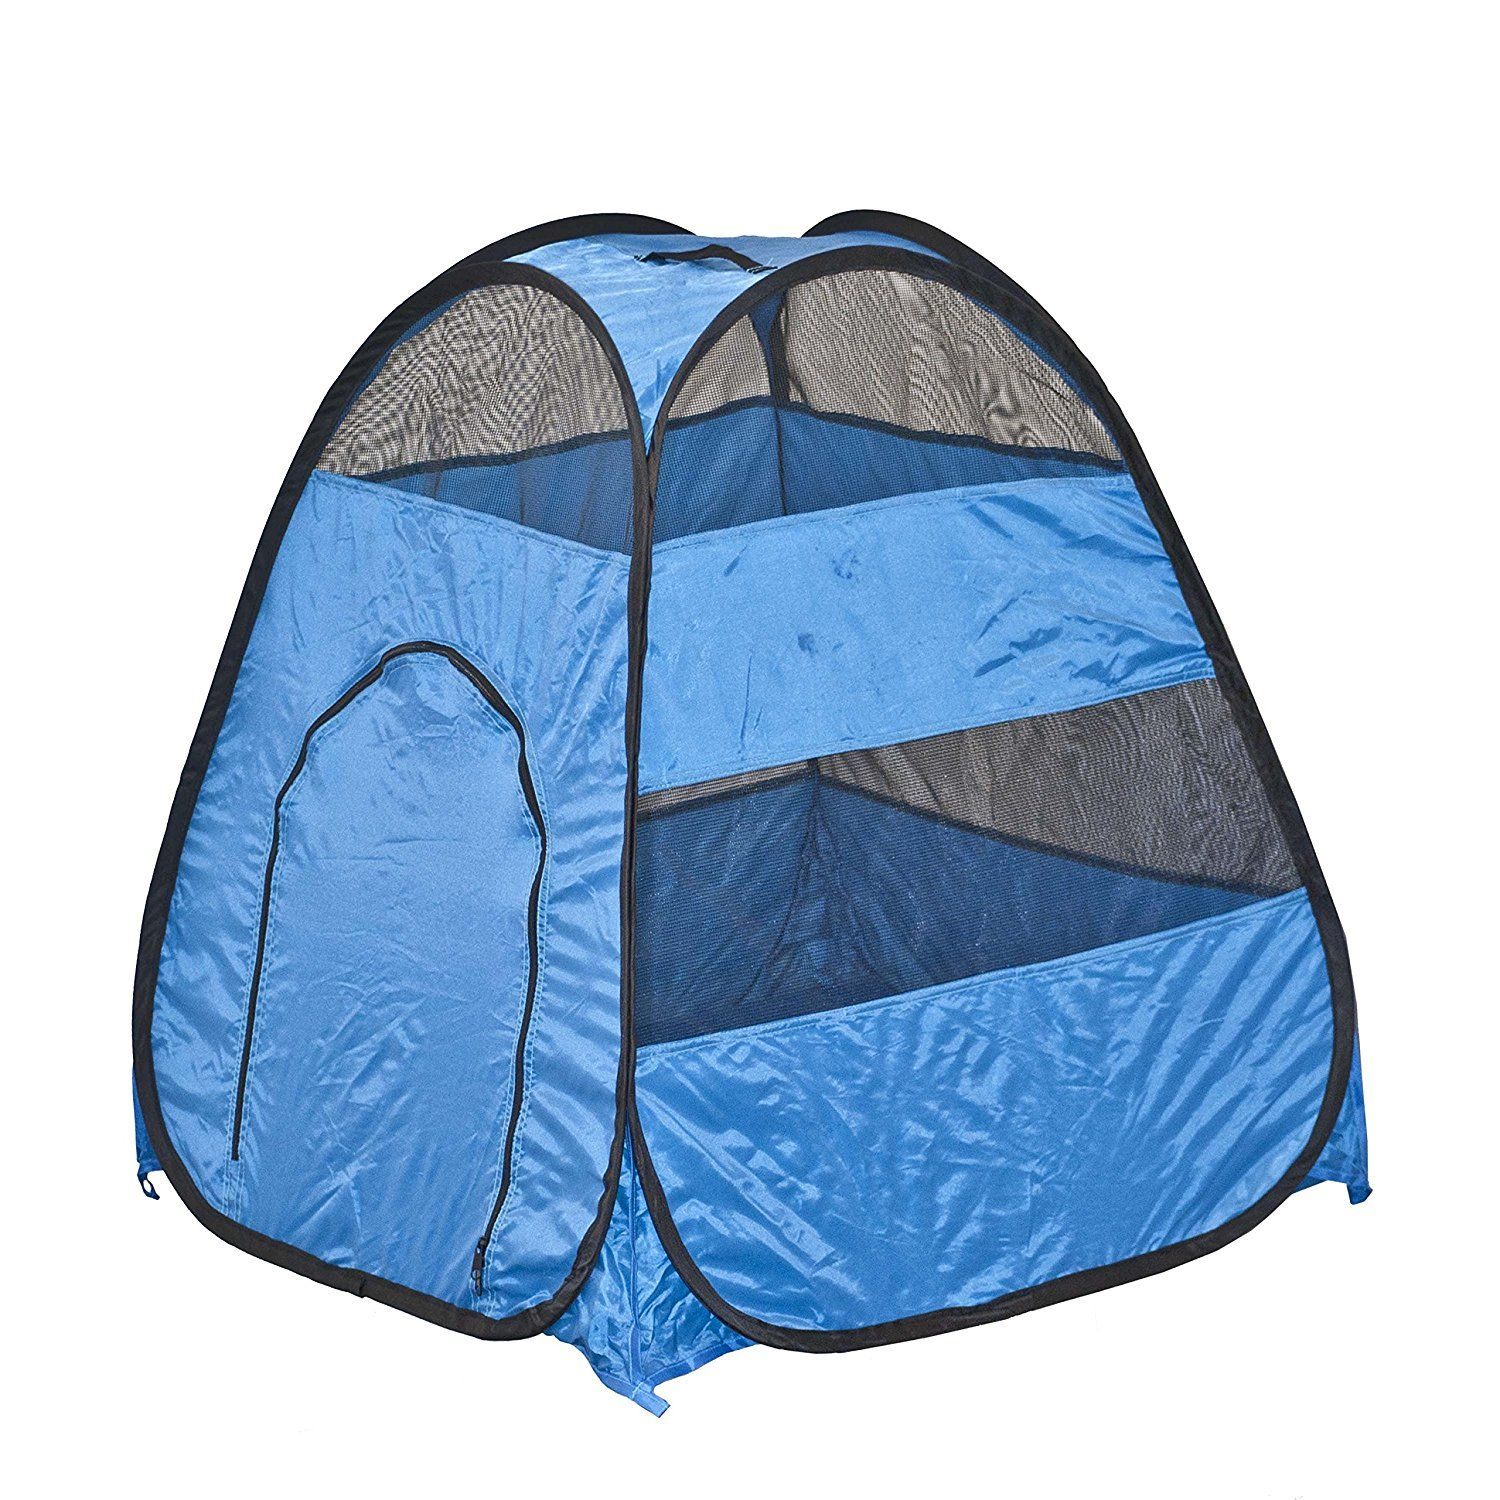 ALEKO® 32 Inch PE Pop Up Portable cat Tent Blue Color u003eu003eu003e Awesome cat product. Click the image  Cat Doors Steps Nets and Perches  sc 1 st  Pinterest & ALEKO¶© 32 Inch PE Pop Up Portable Pet Tent Blue Color ...